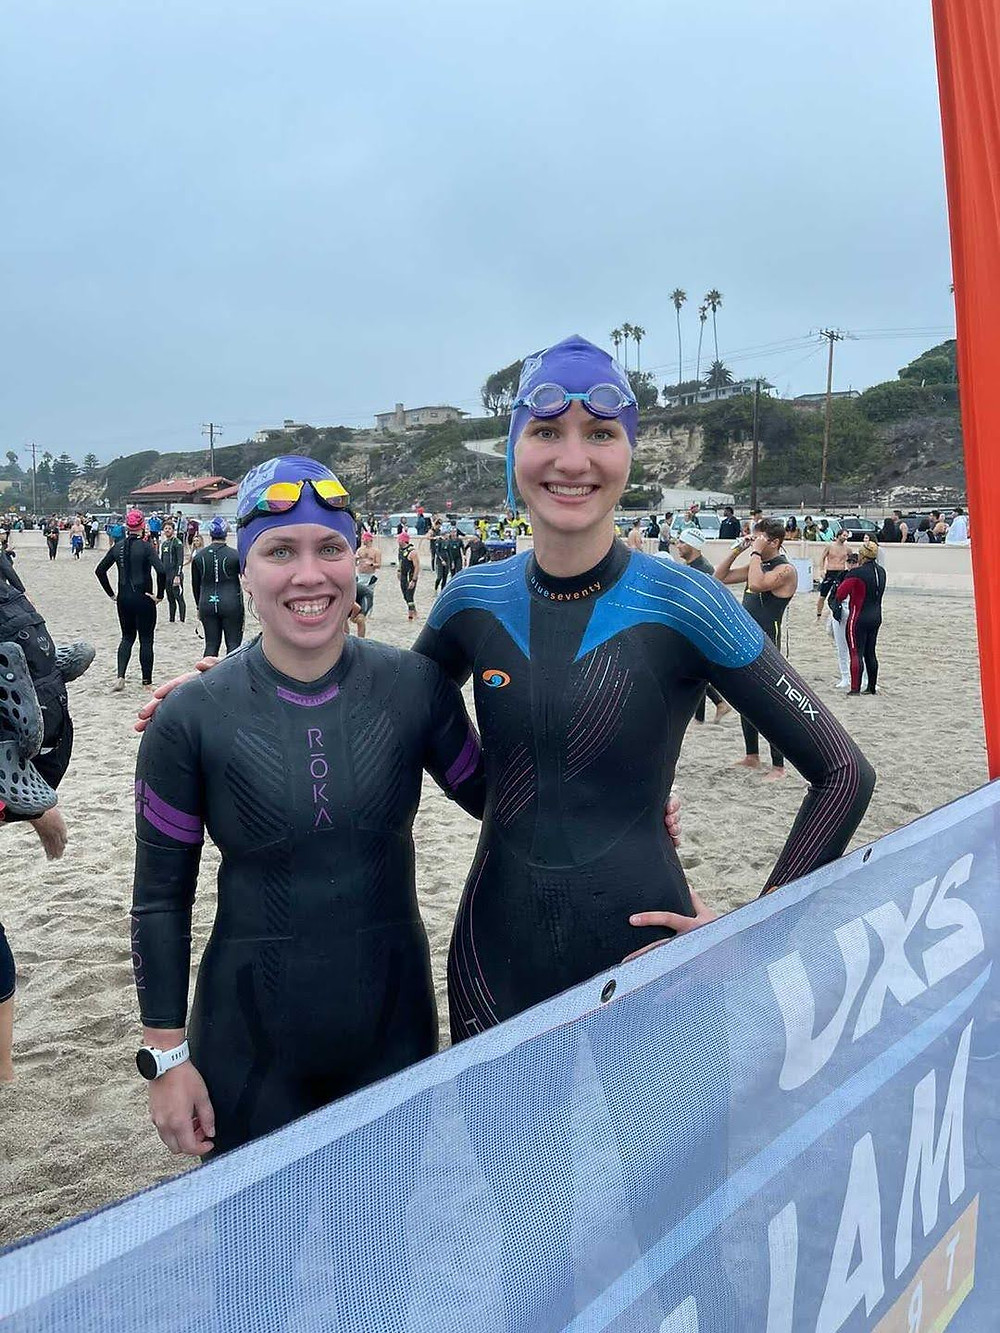 Two women in wetsuits on a beach